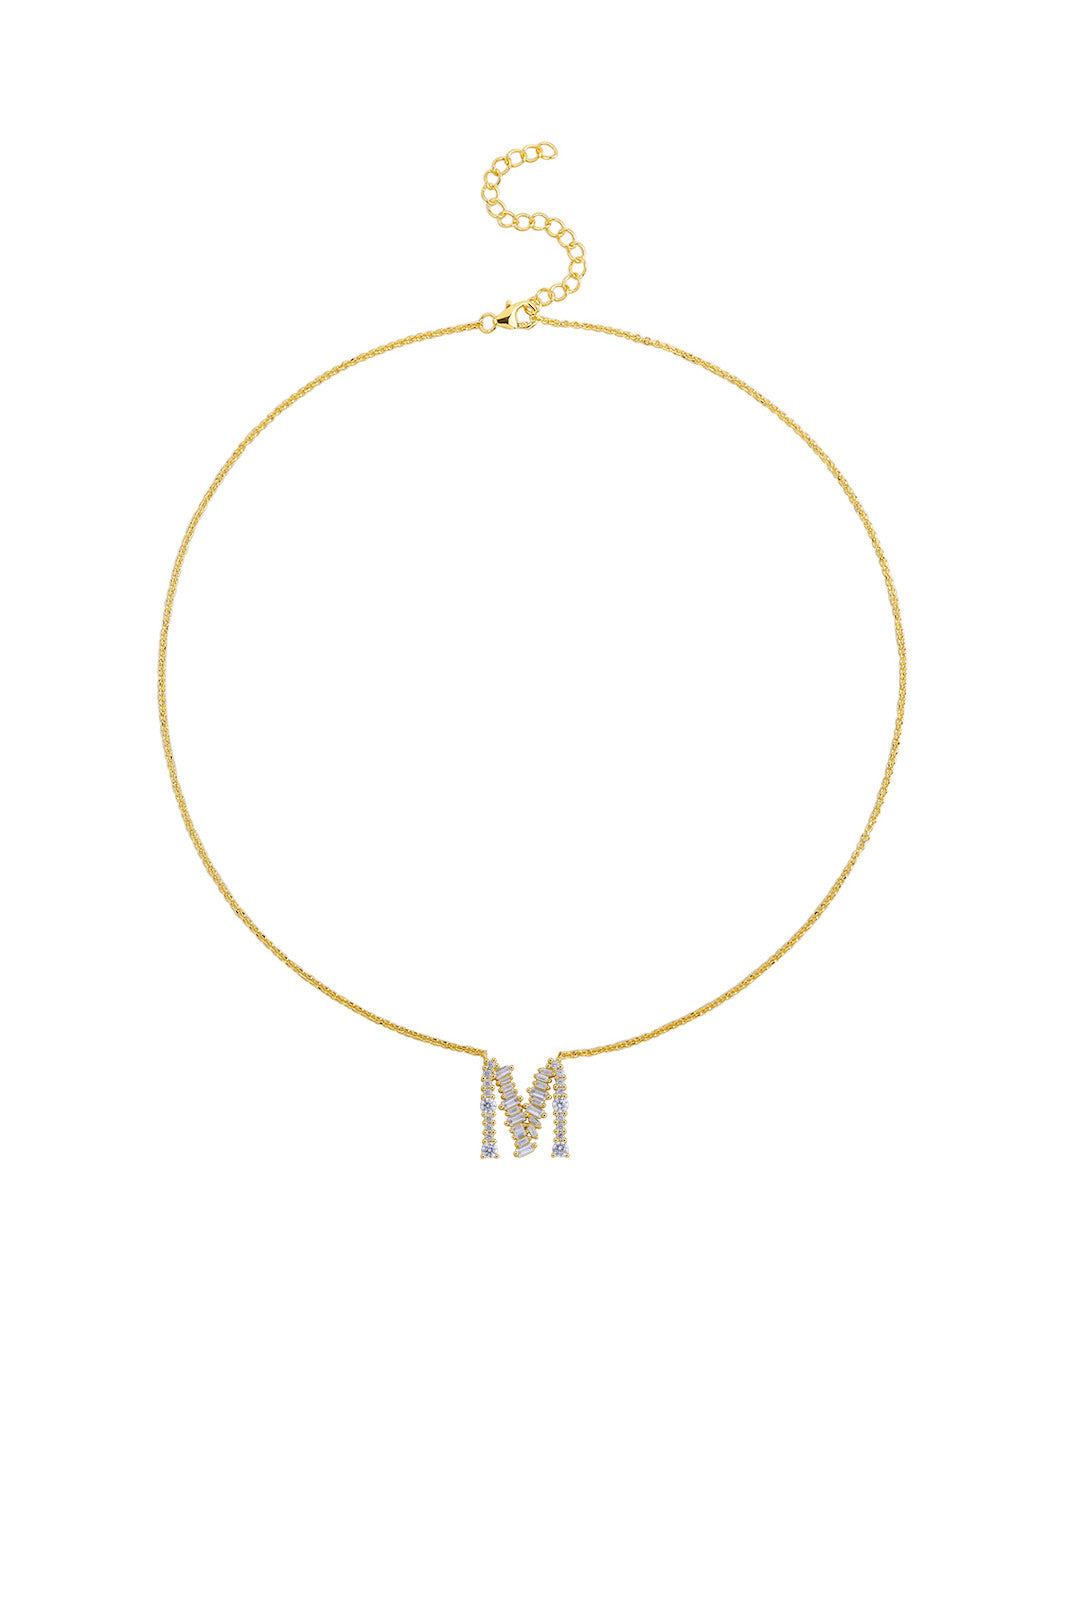 Gold Plated Sterling Silver Initial Necklace - Letter M Detail